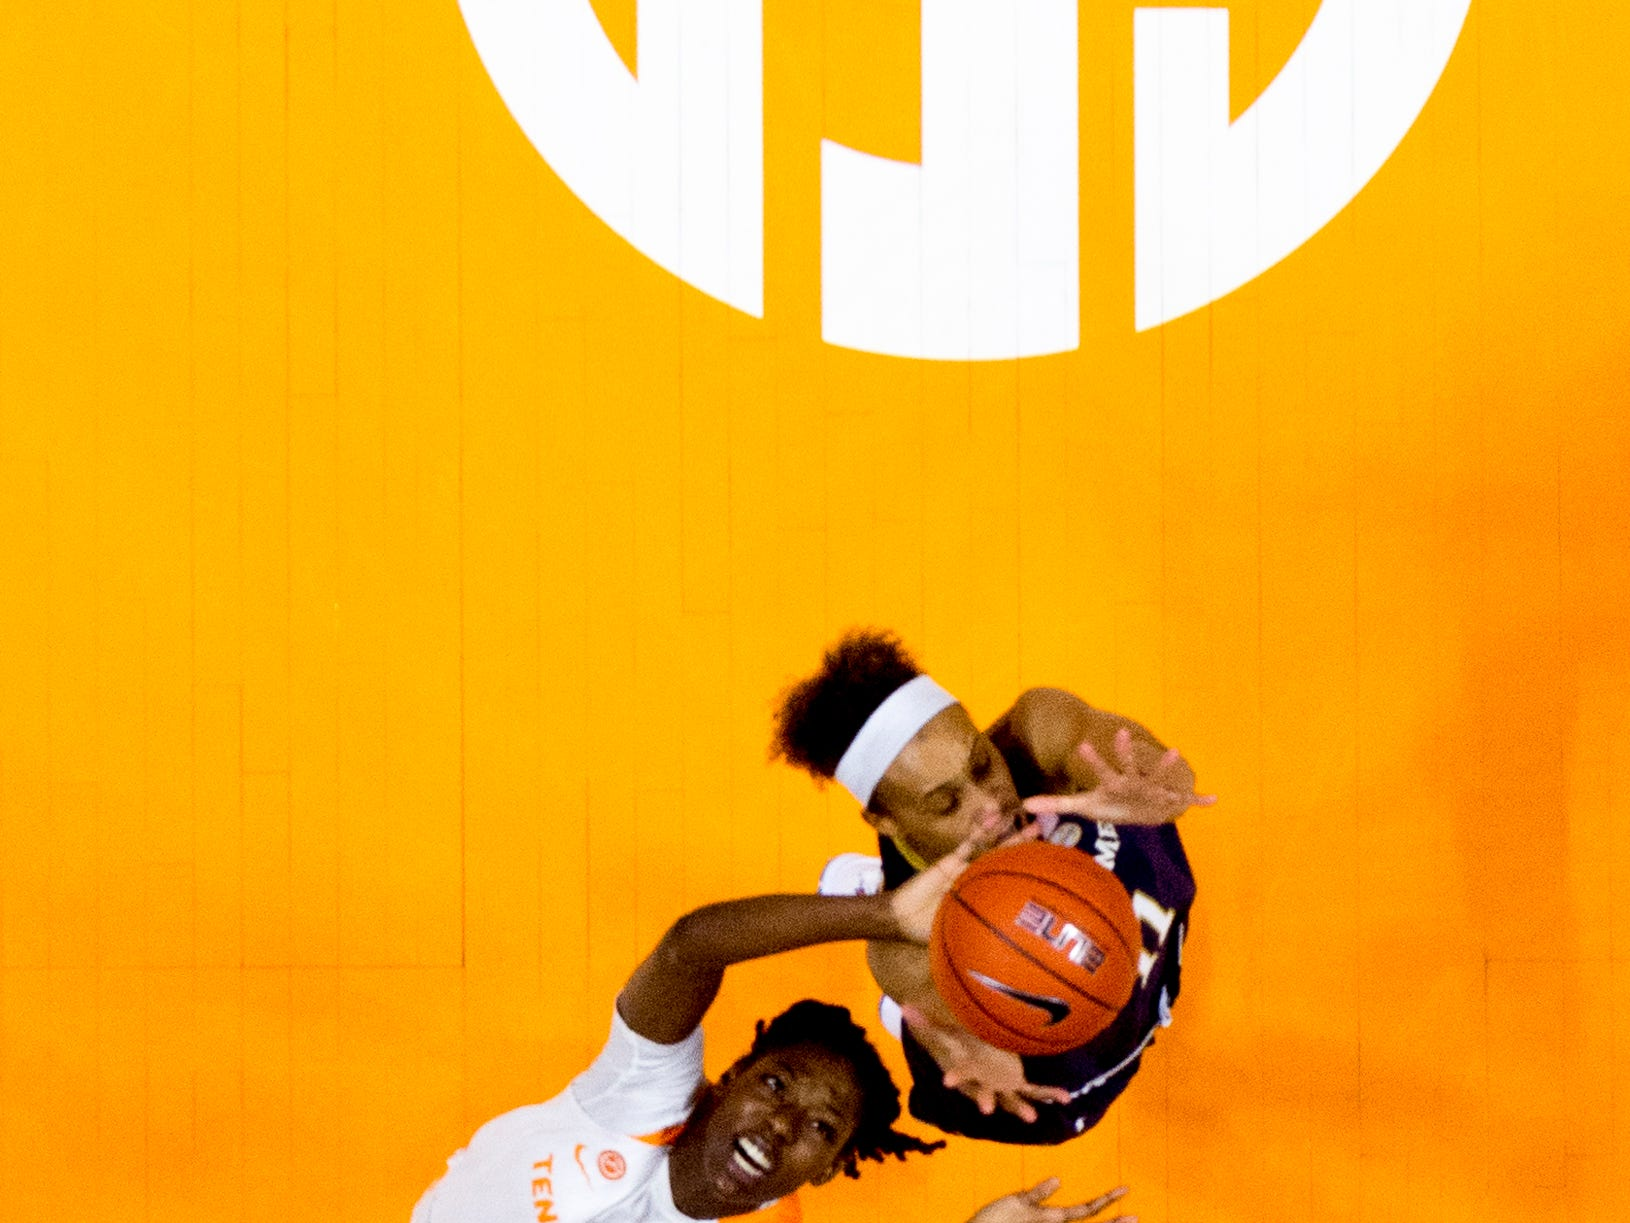 Tennessee guard/forward Rennia Davis (0) and Notre Dame forward Brianna Turner (11) reach for the ball during a game between Tennessee and Notre Dame at Thompson-Boling Arena in Knoxville, Tennessee on Thursday, January 24, 2019.